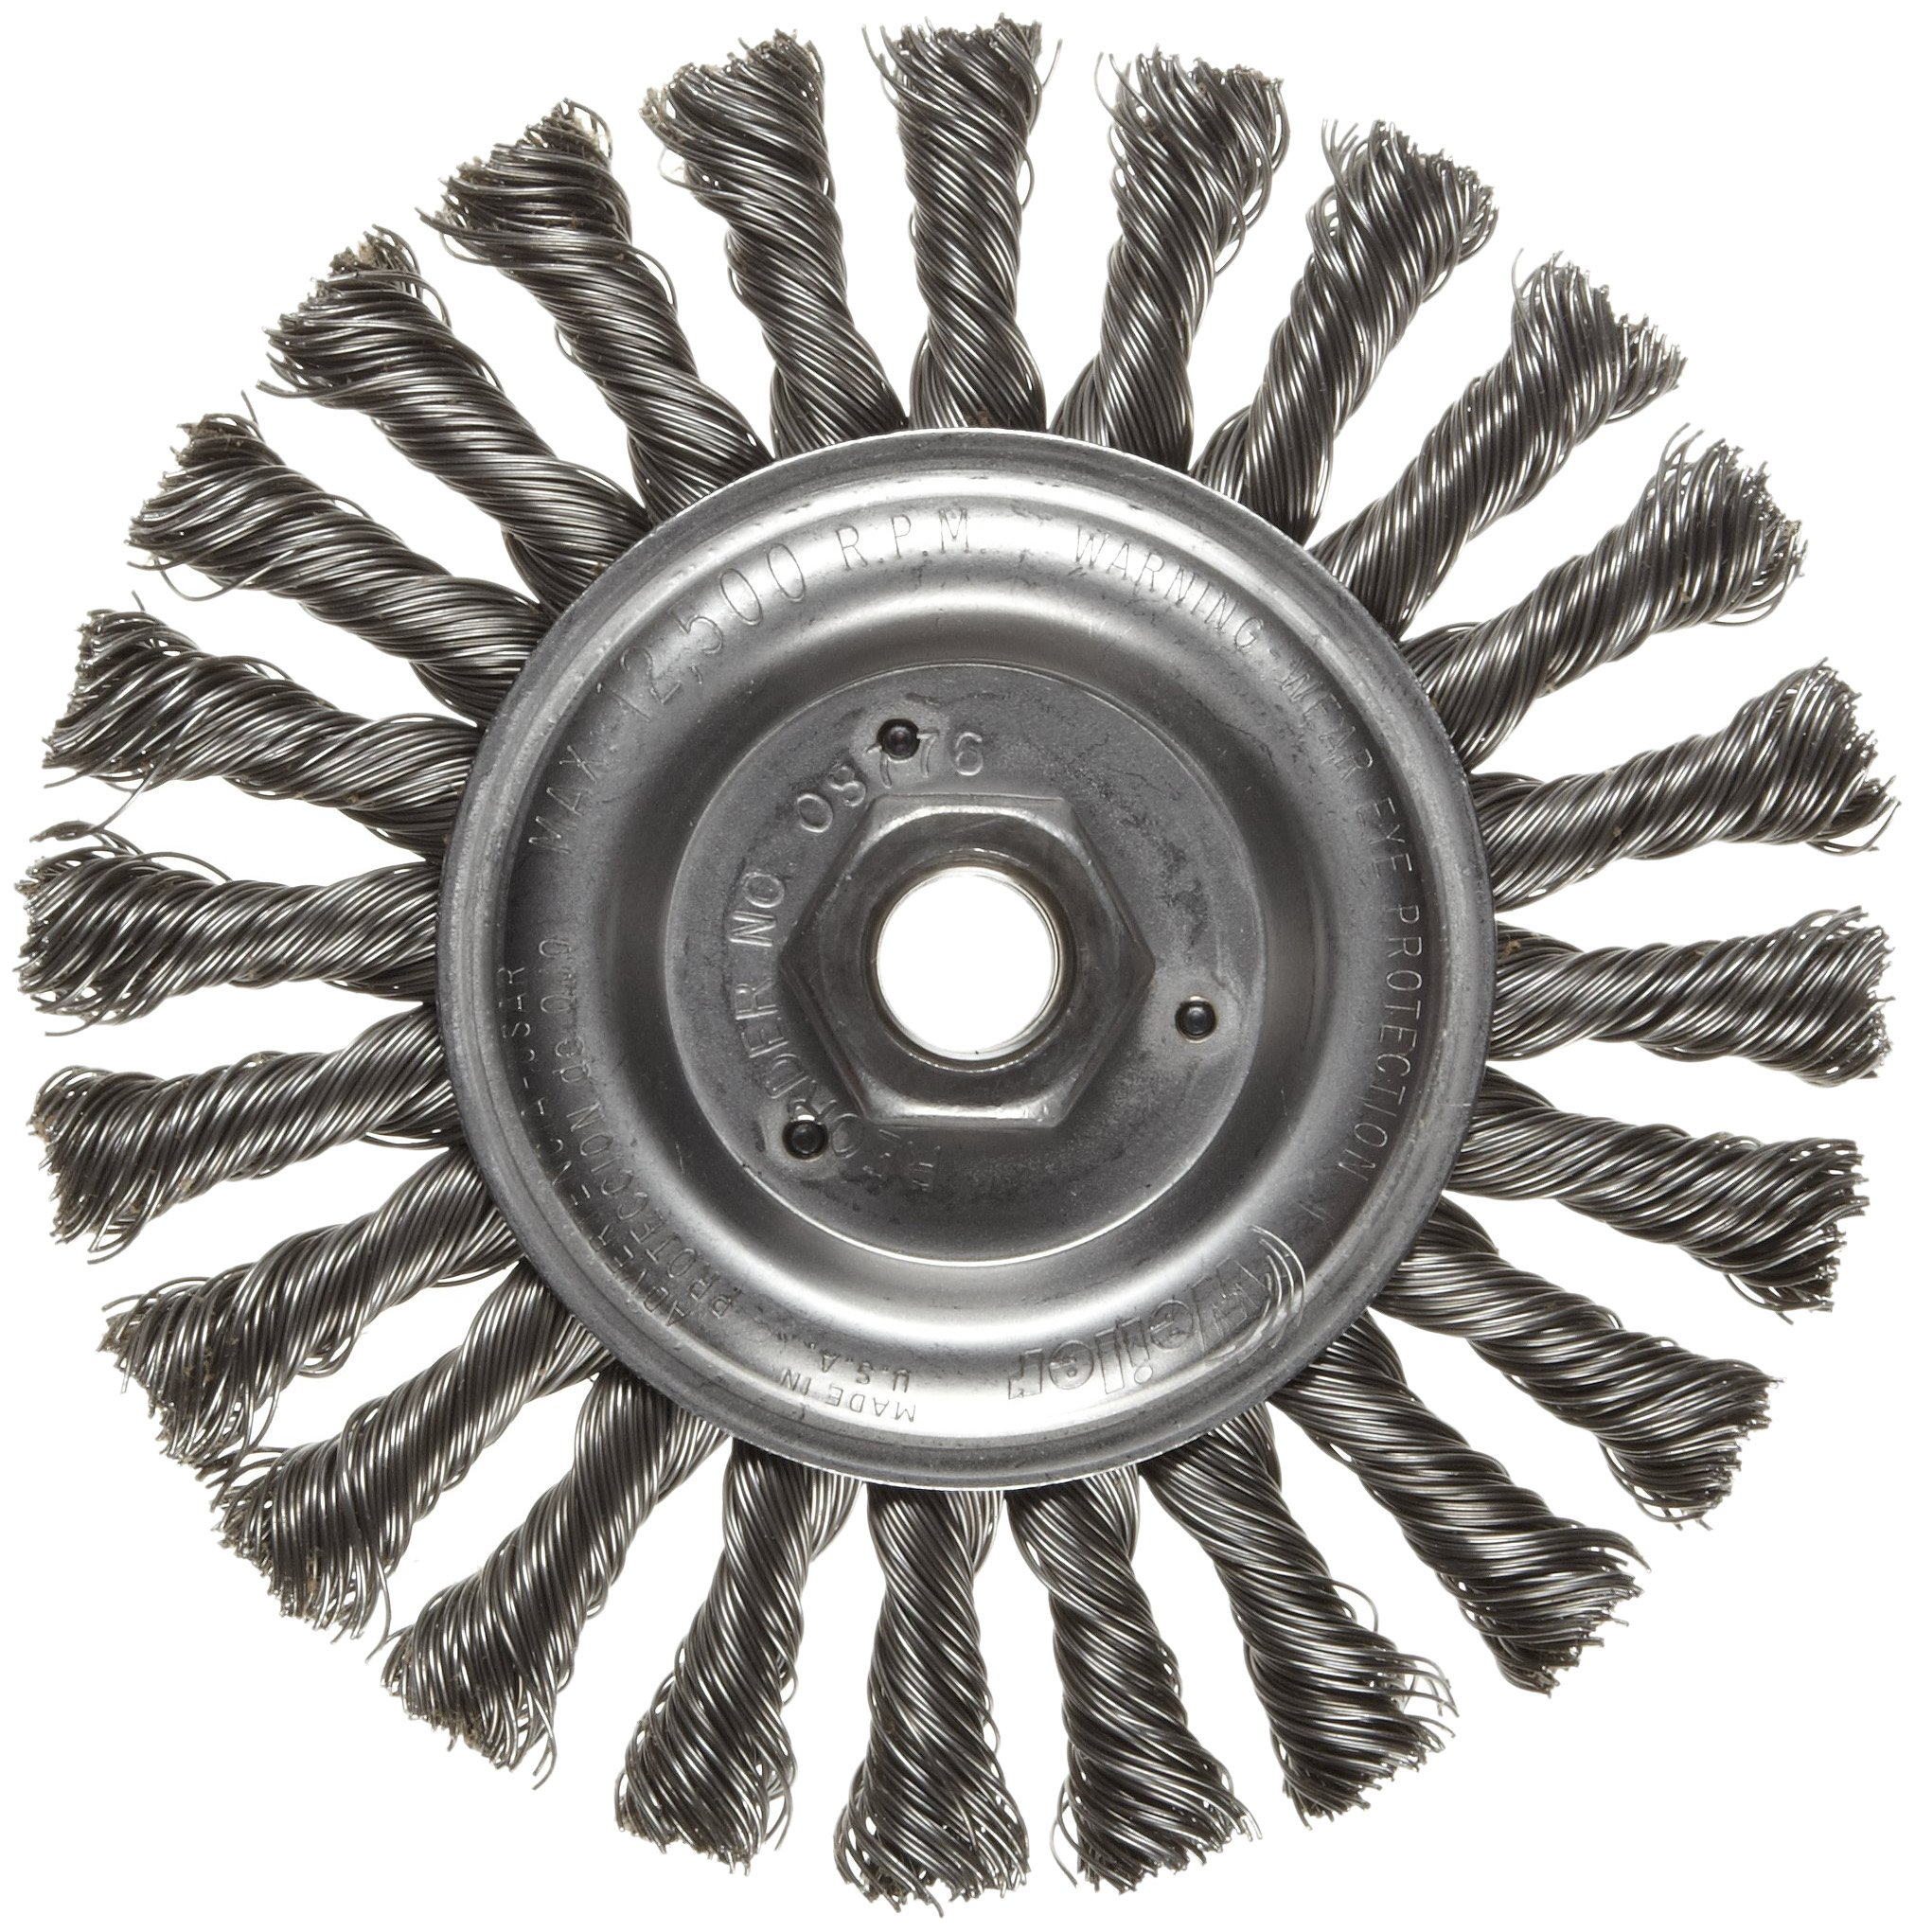 Weiler Dualife Narrow Face Wire Wheel Brush, Threaded Hole, Steel, Stringer Knotted, 6'' Diameter, 0.023'' Wire Diameter, 5/8-11'' Arbor, 1-3/8''  Bristle Length, 1/2'' Brush Face Width, 12500 rpm